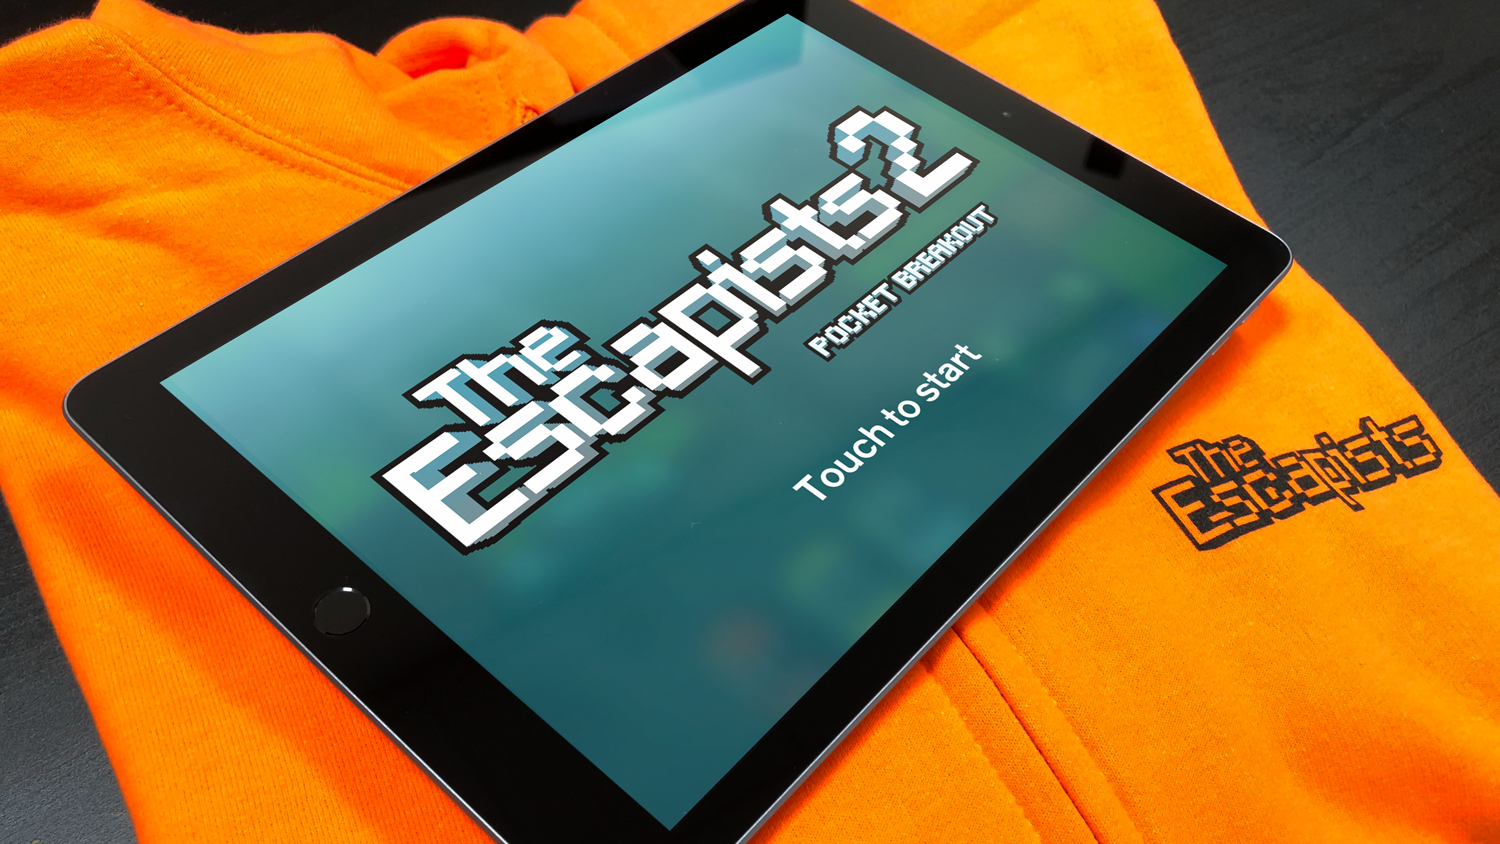 Win an iPad with The Escapists 2: Pocket Breakout!